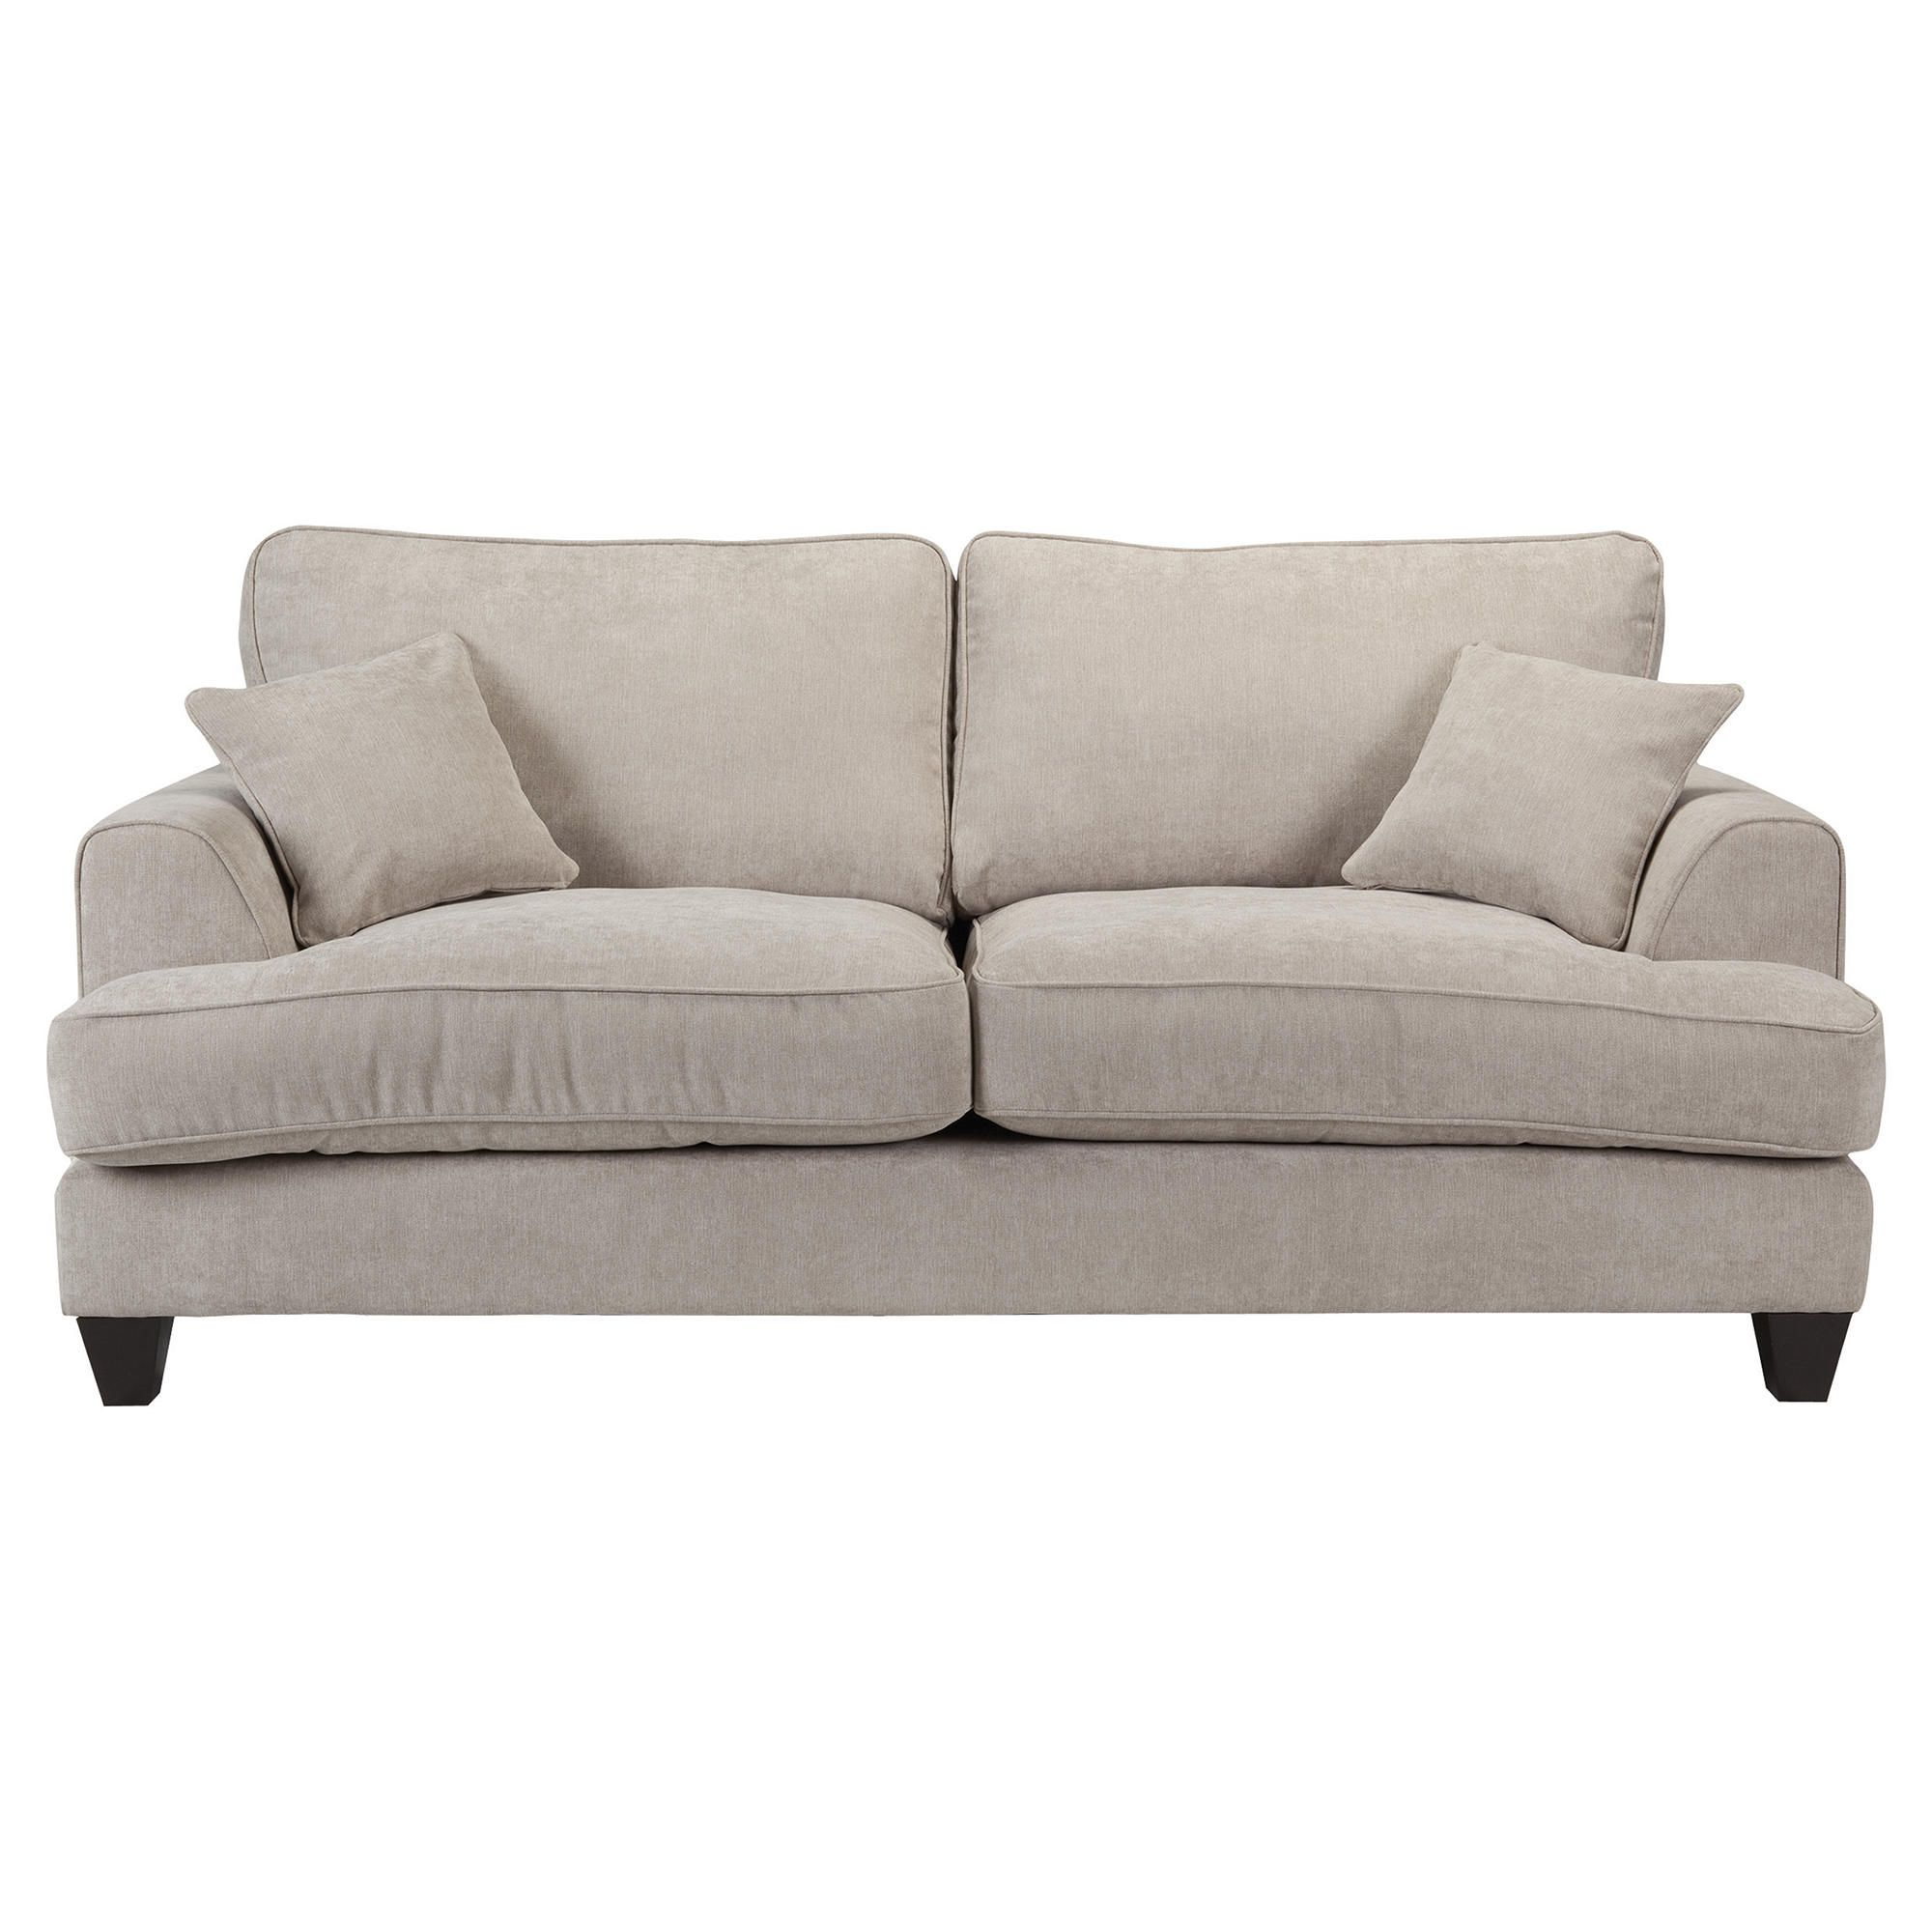 Kensington Fabric Large Sofa Light Grey at Tesco Direct